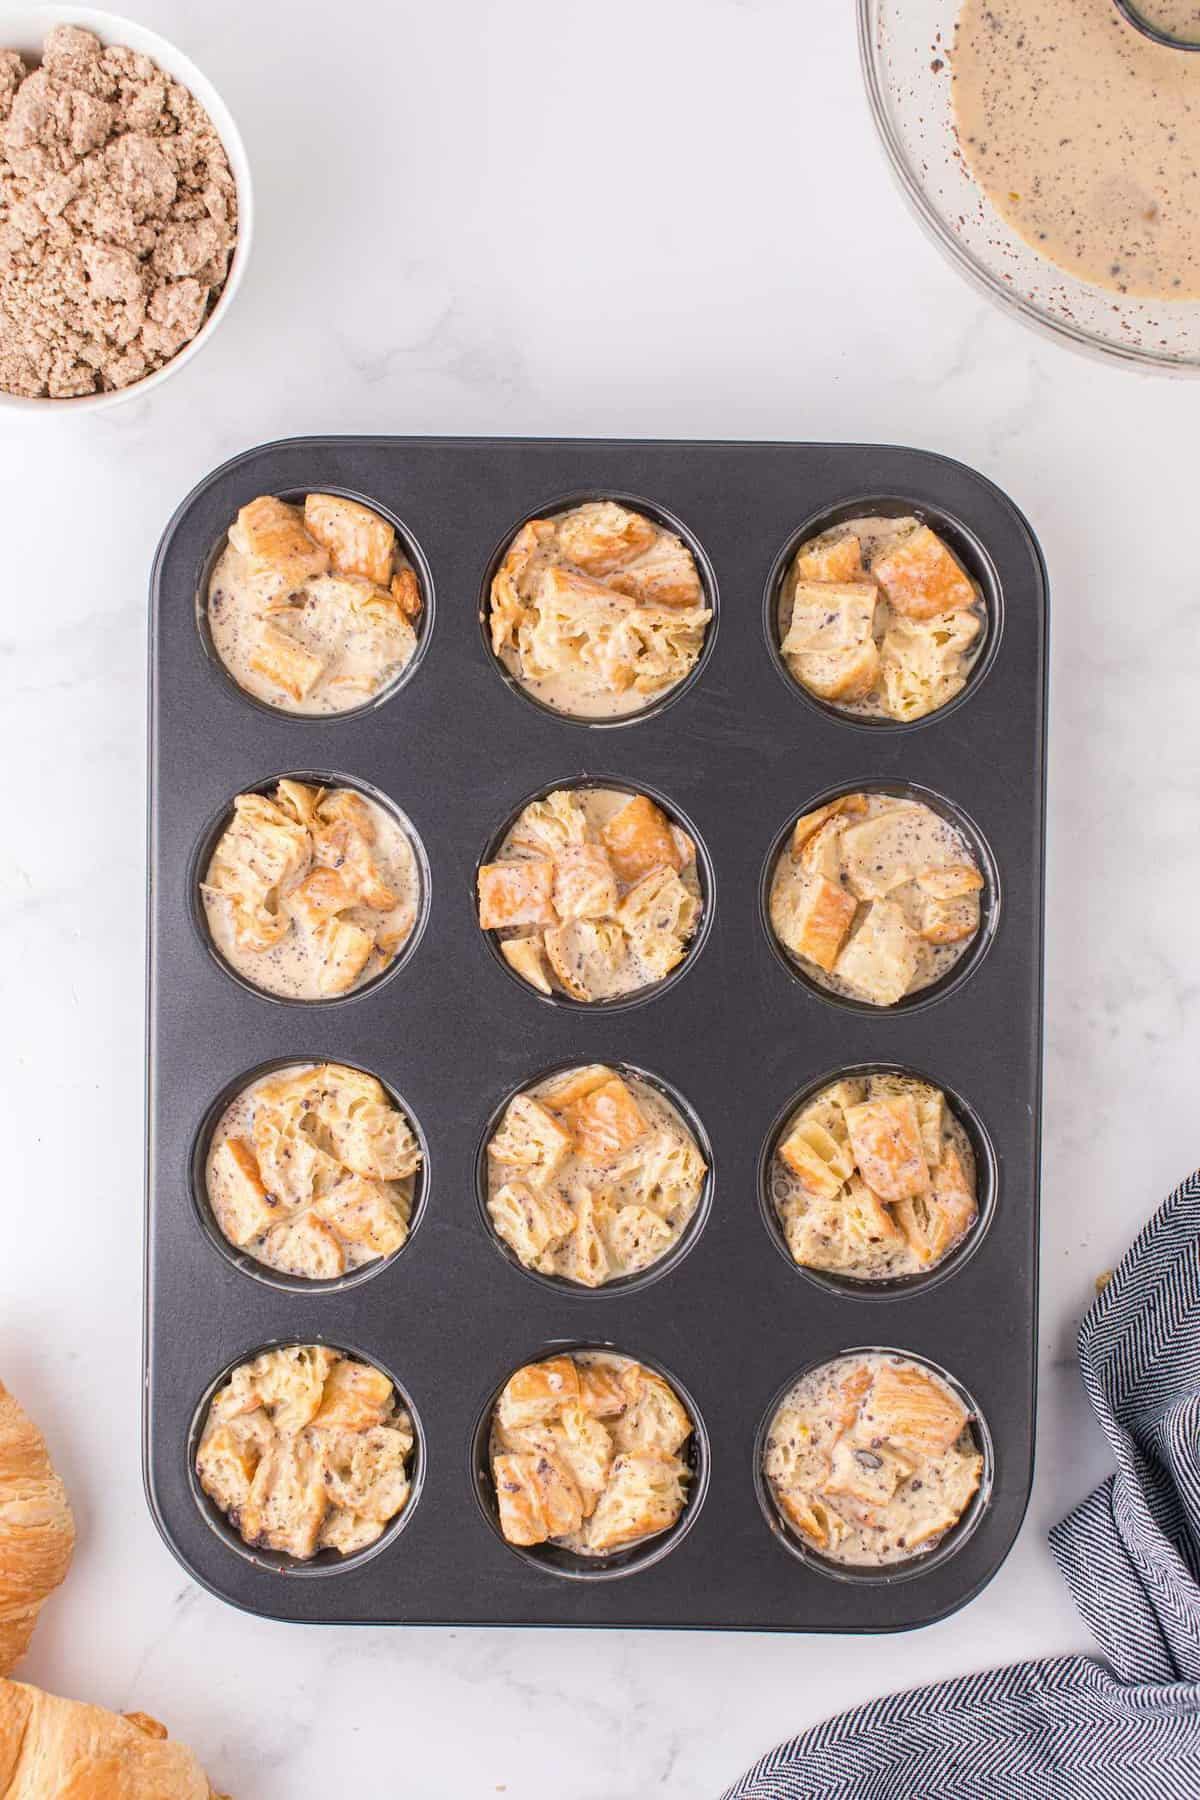 Pour the mixture into the muffin pans